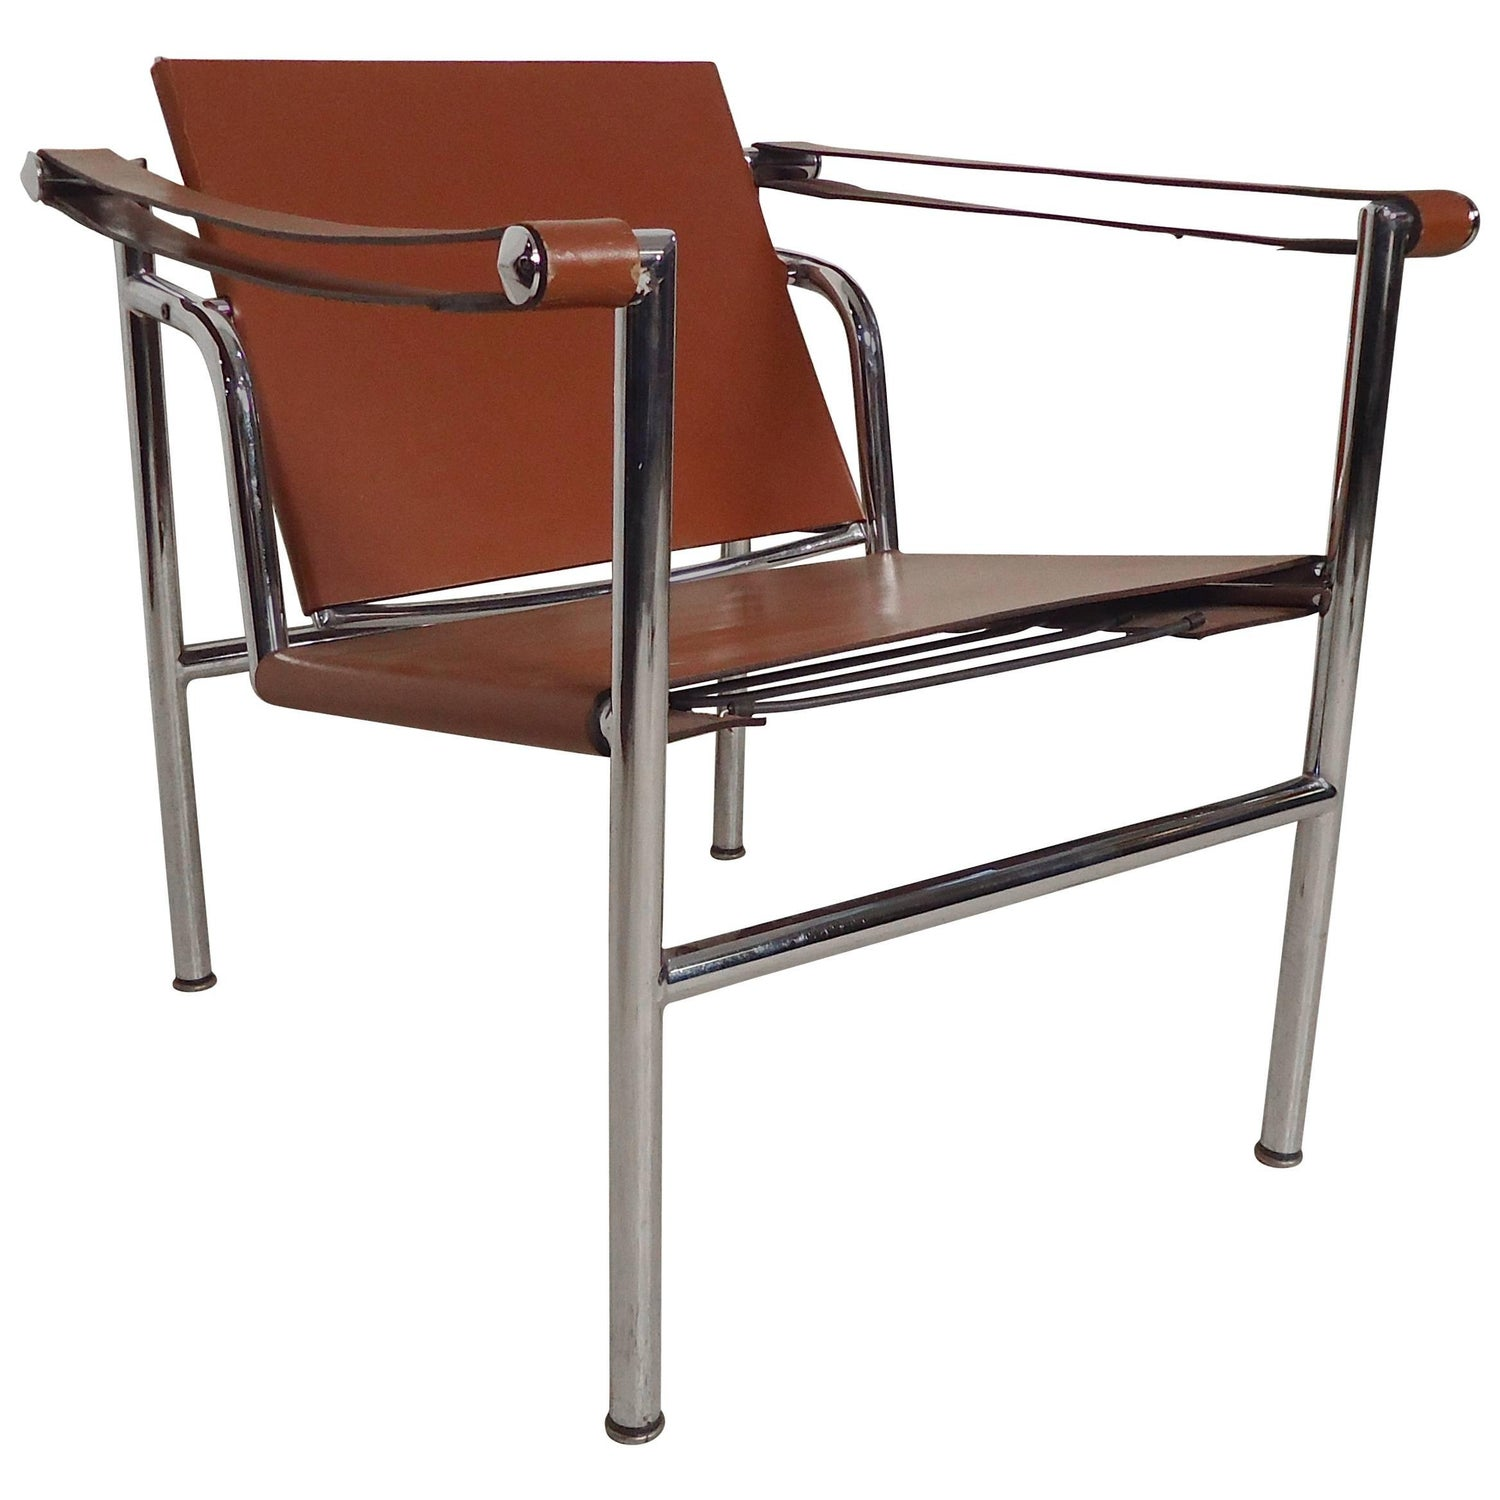 Le Corbusier Furniture Chairs Sofas Tables & More 58 For Sale